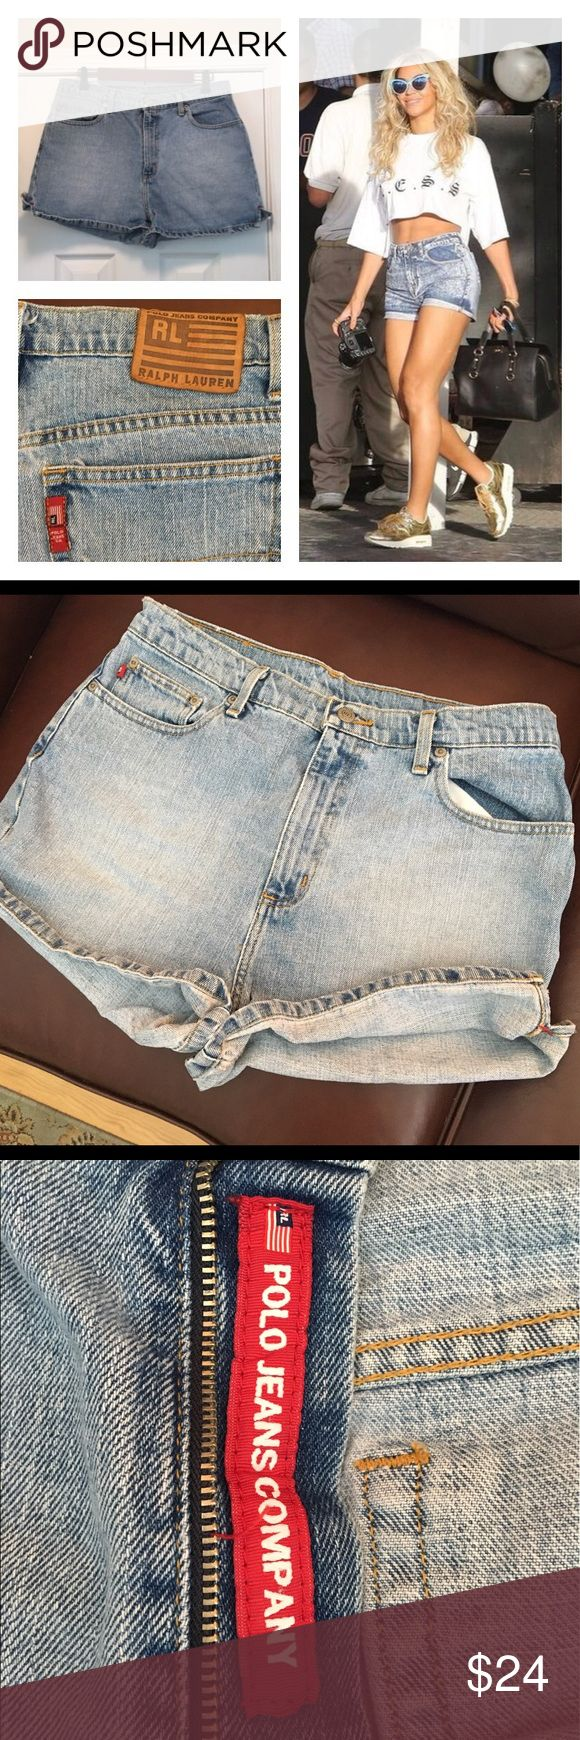 """Ralph Lauren Weekender Shorts 100% Cotton Shorts are in excellent gently used condition.   """"A NICE PAIR OF POLO RALPH LAUREN WOMENS JEAN SHORTS""""!!! Ralph Lauren Shorts Jean Shorts"""